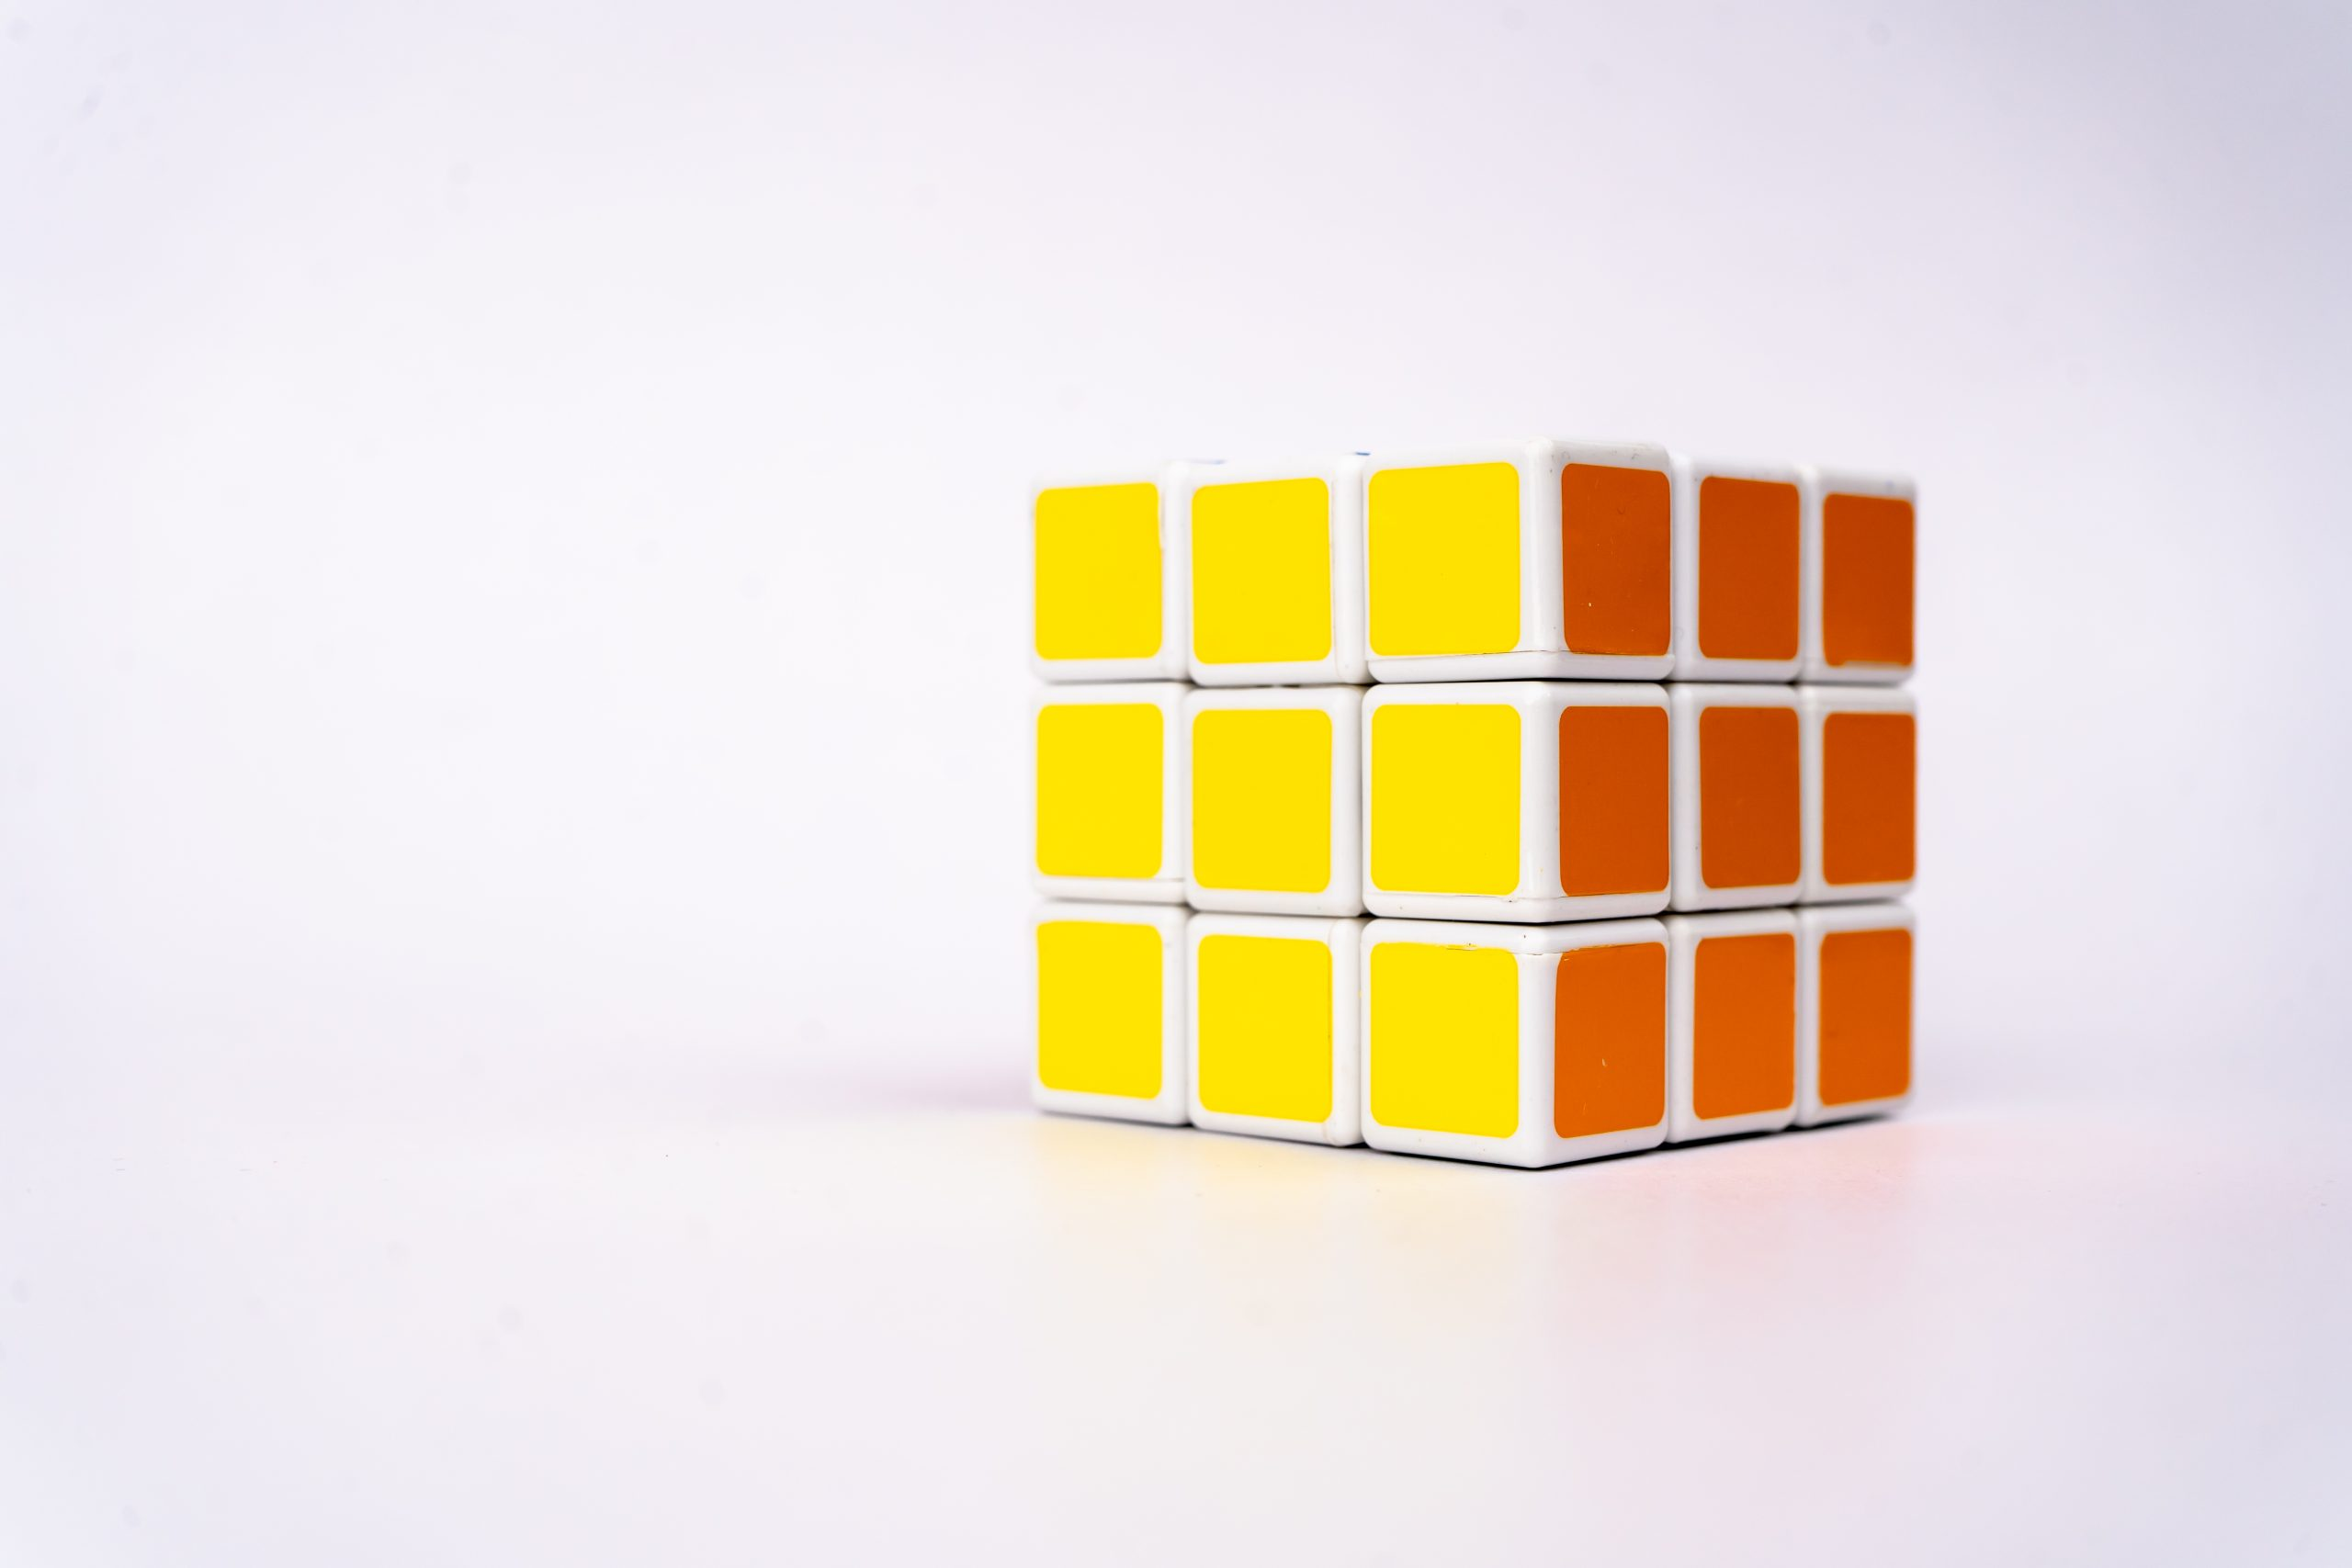 Cube side view